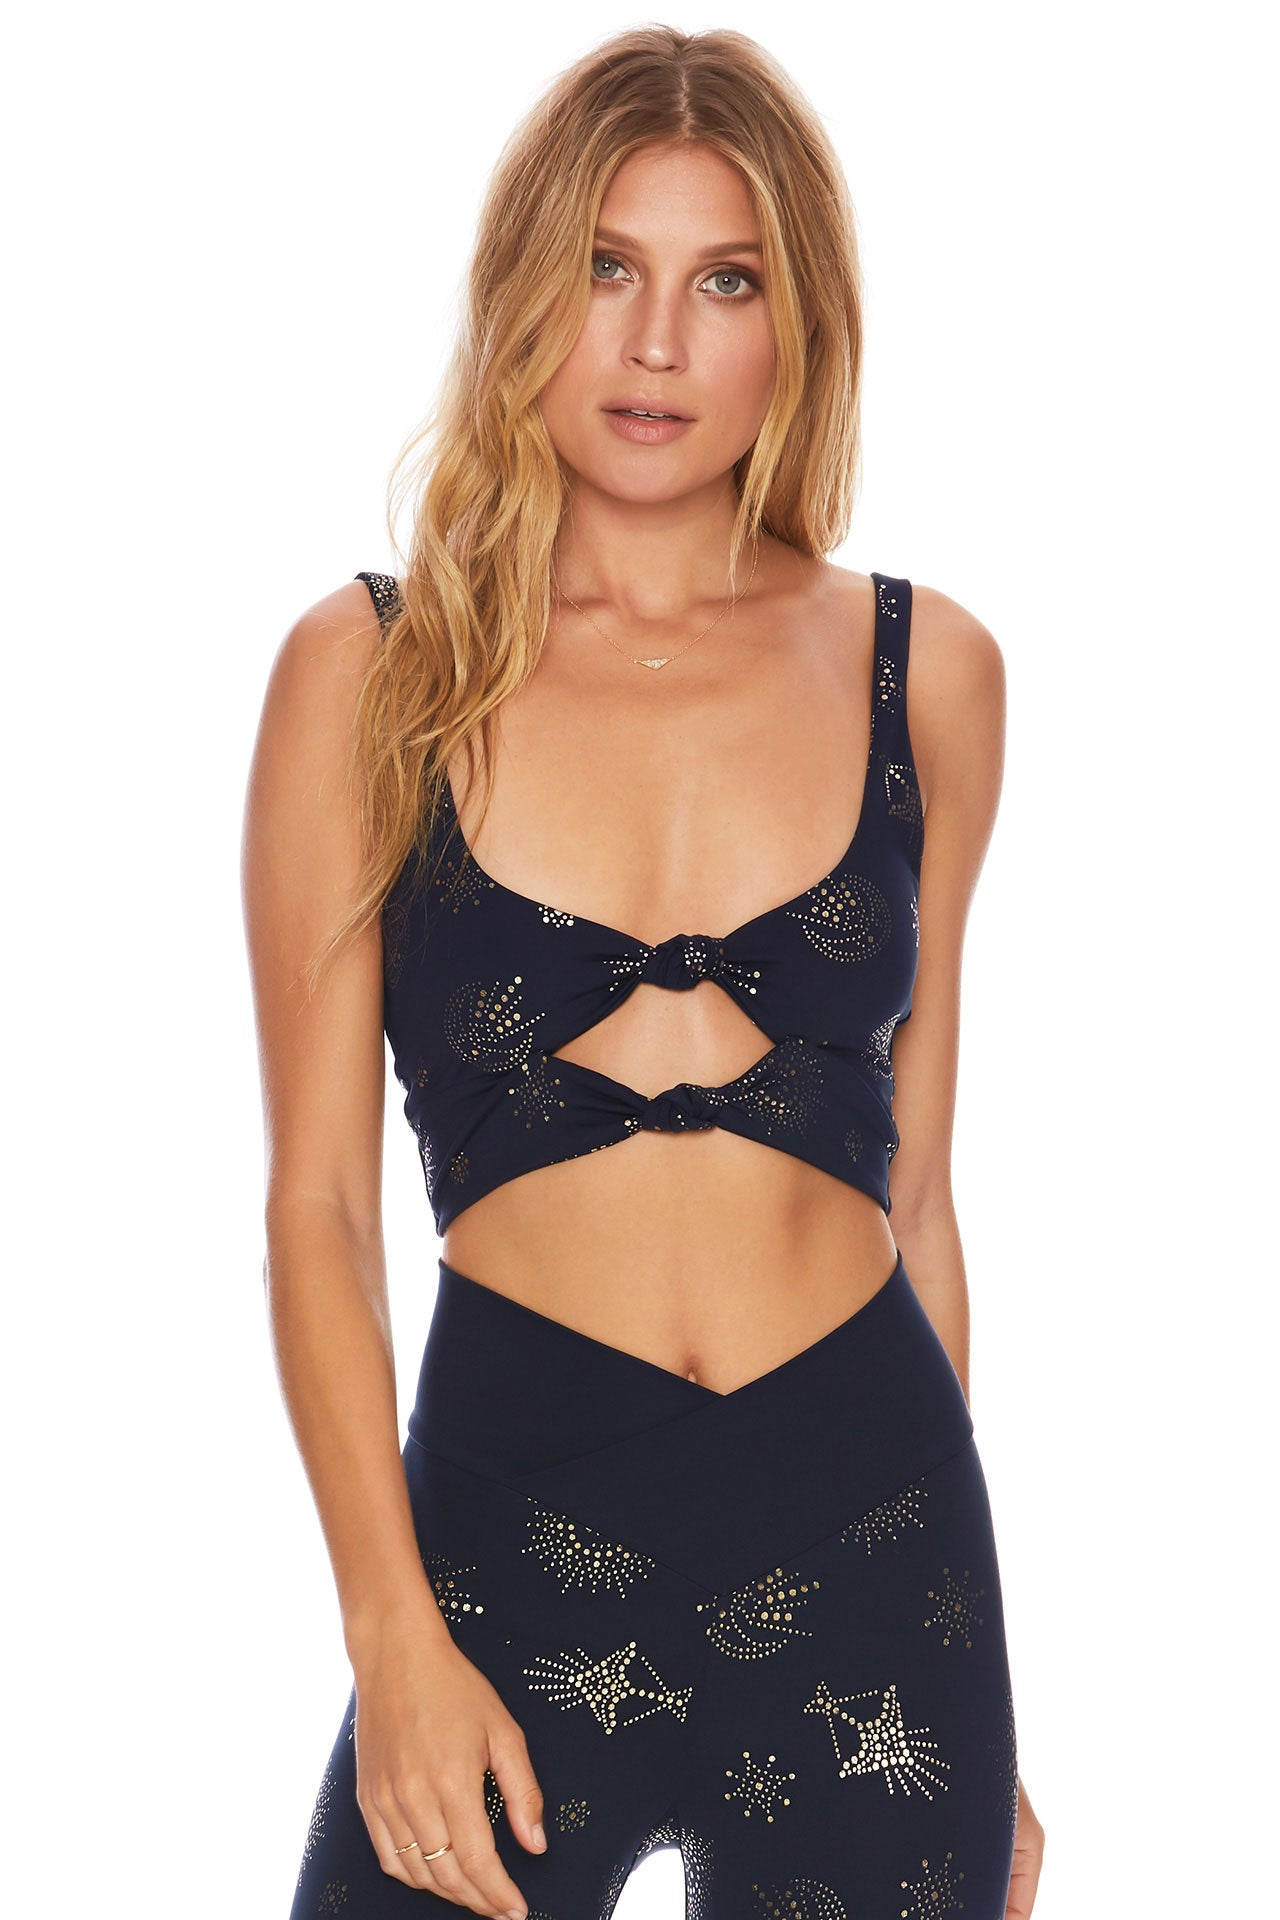 Beach Riot Bowie Top - Sculptique